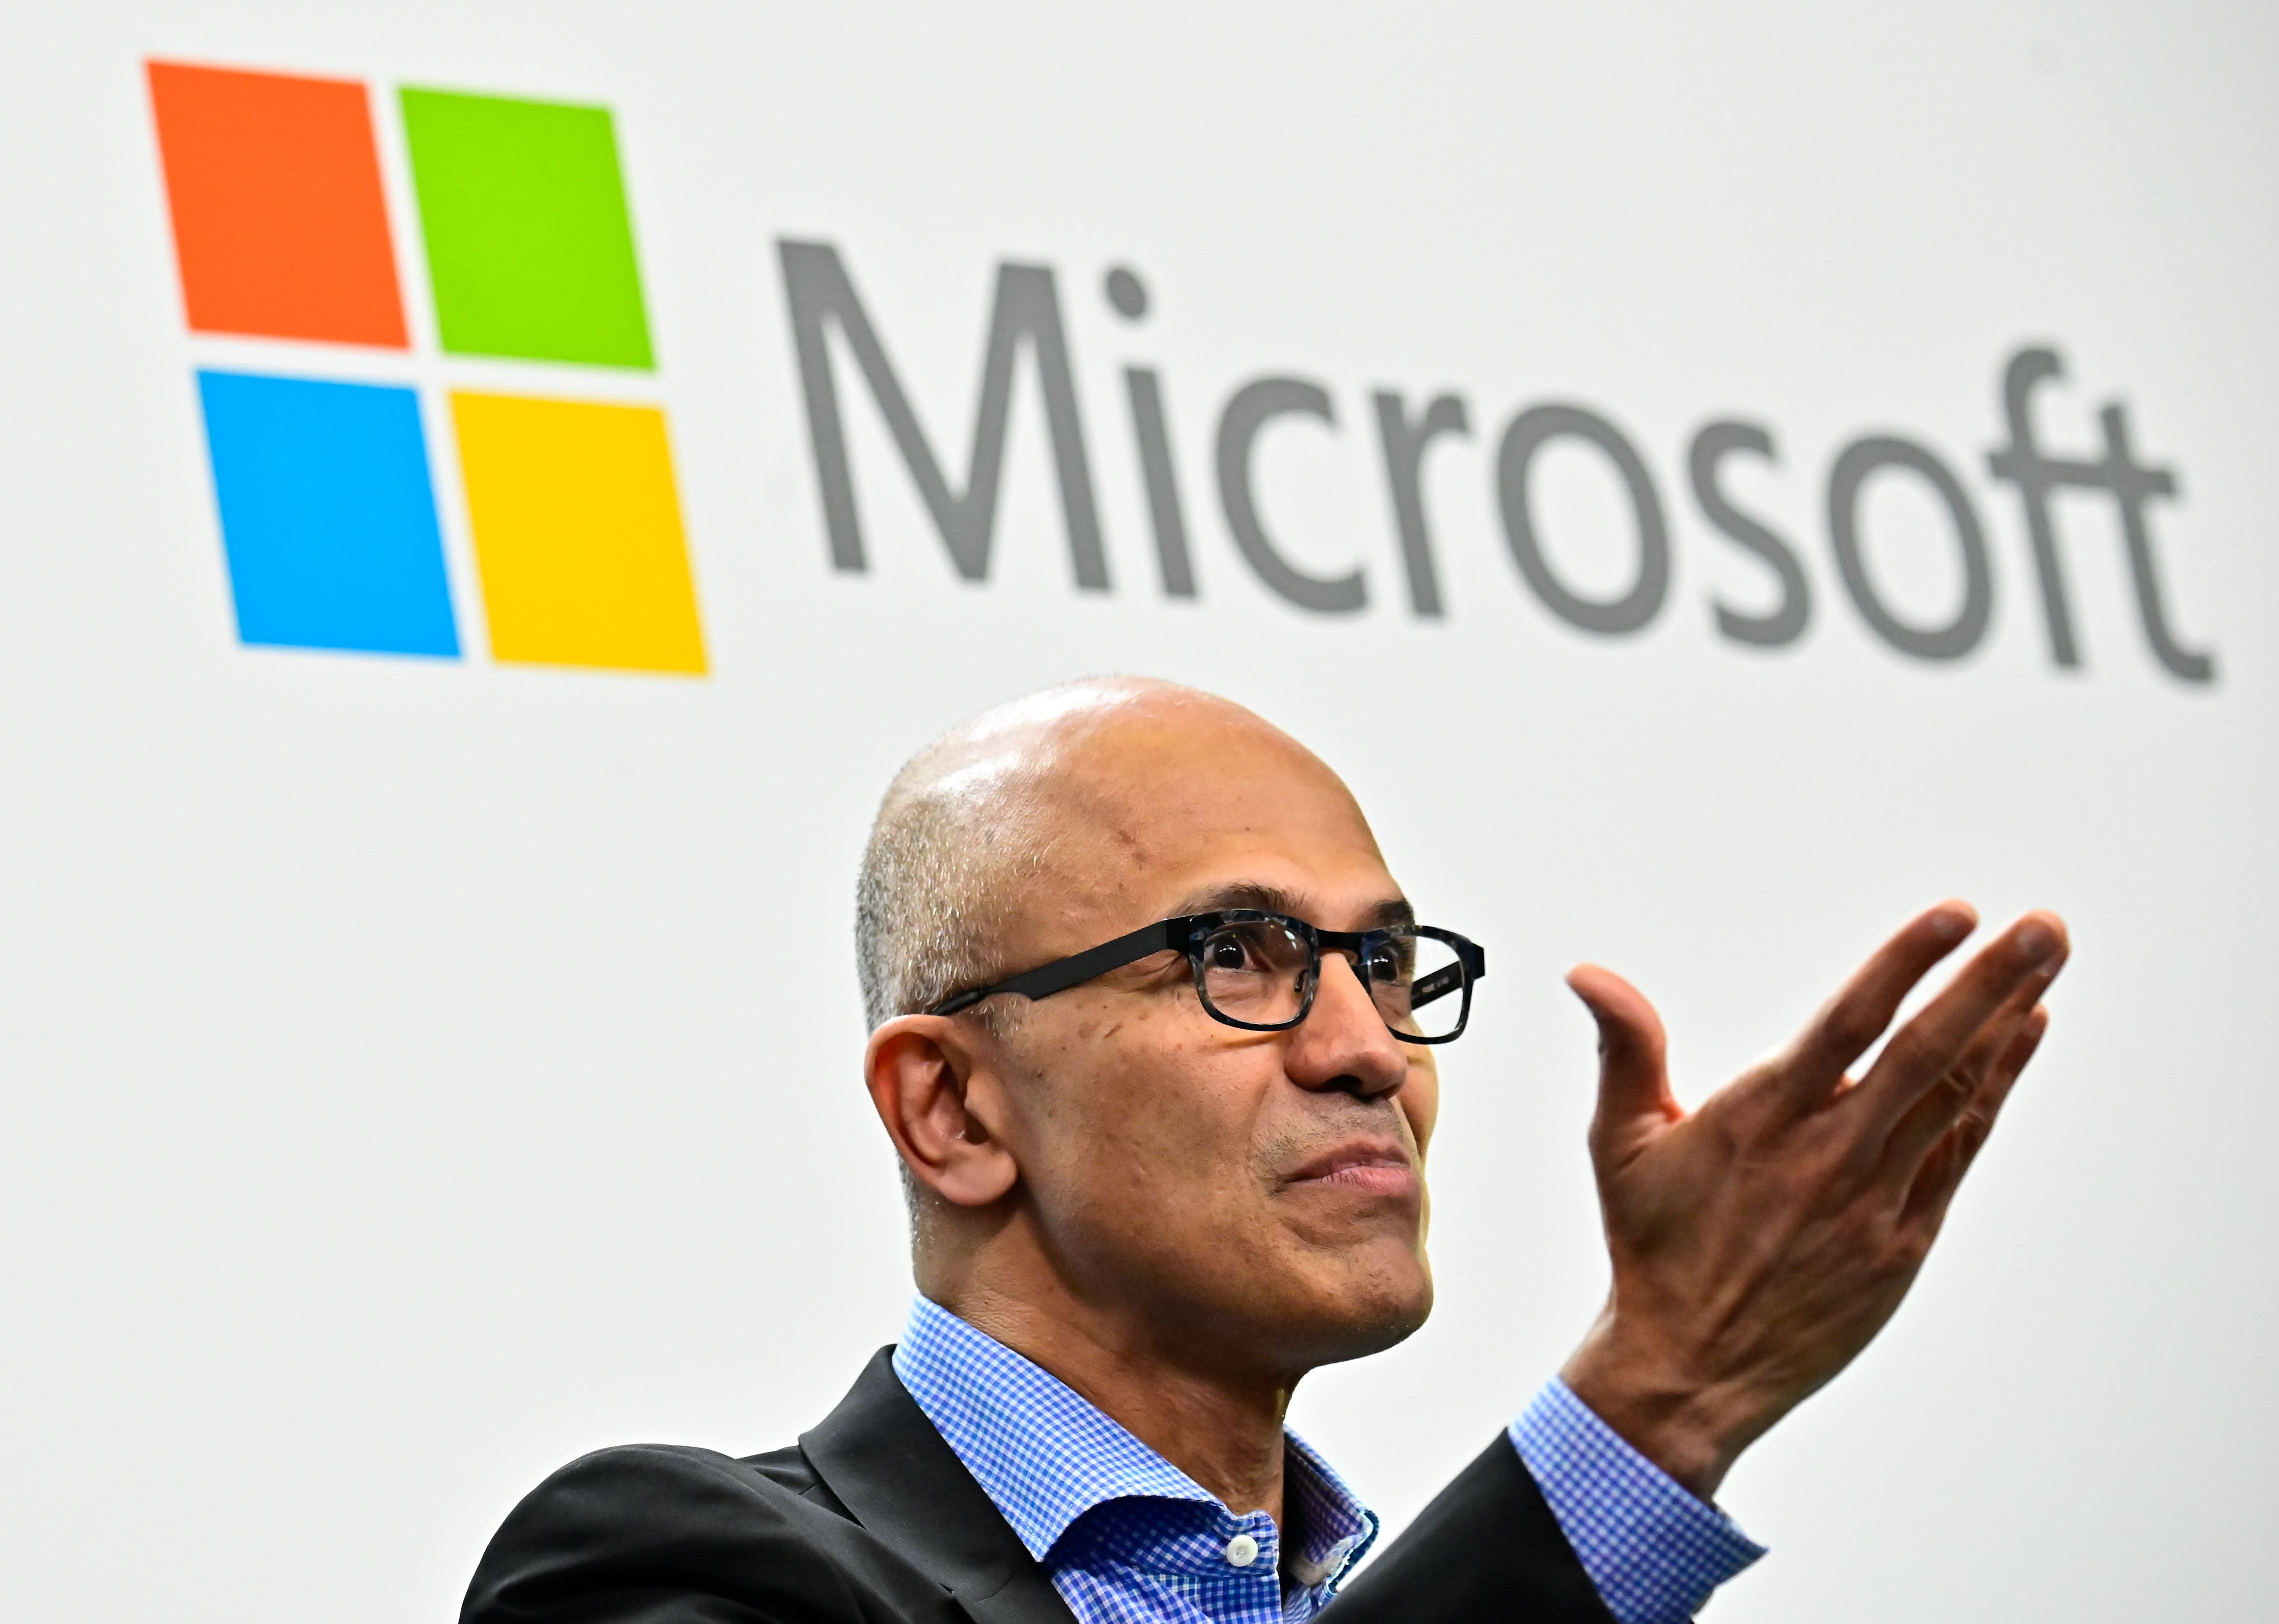 Microsoft and Nvidia are among RBC's best ideas for sustainable investing